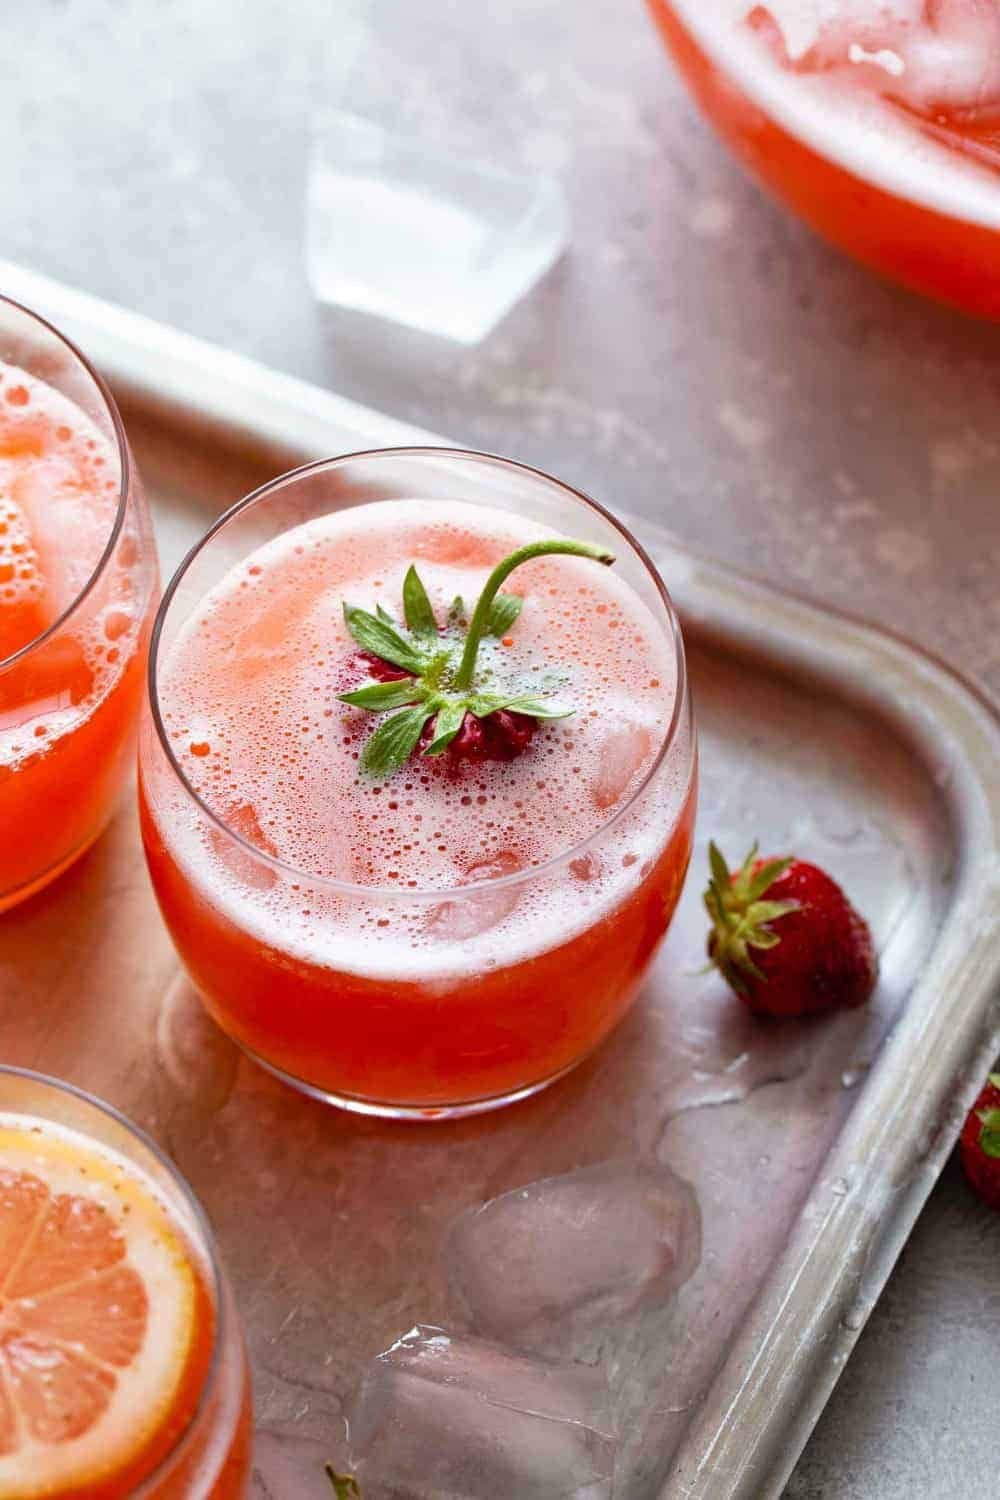 Homemade Strawberry Lemonade Recipe | My Baking Addiction